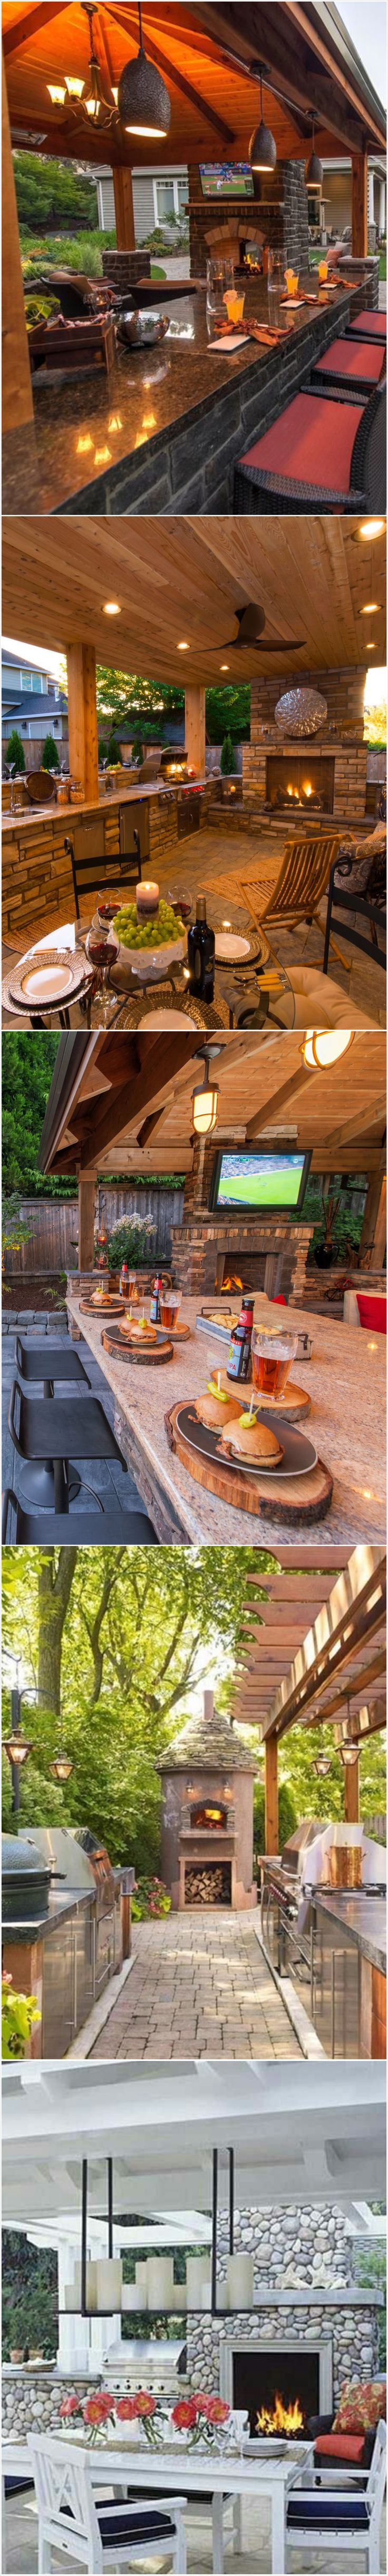 Fabulous #OutdoorKitchen Concepts…